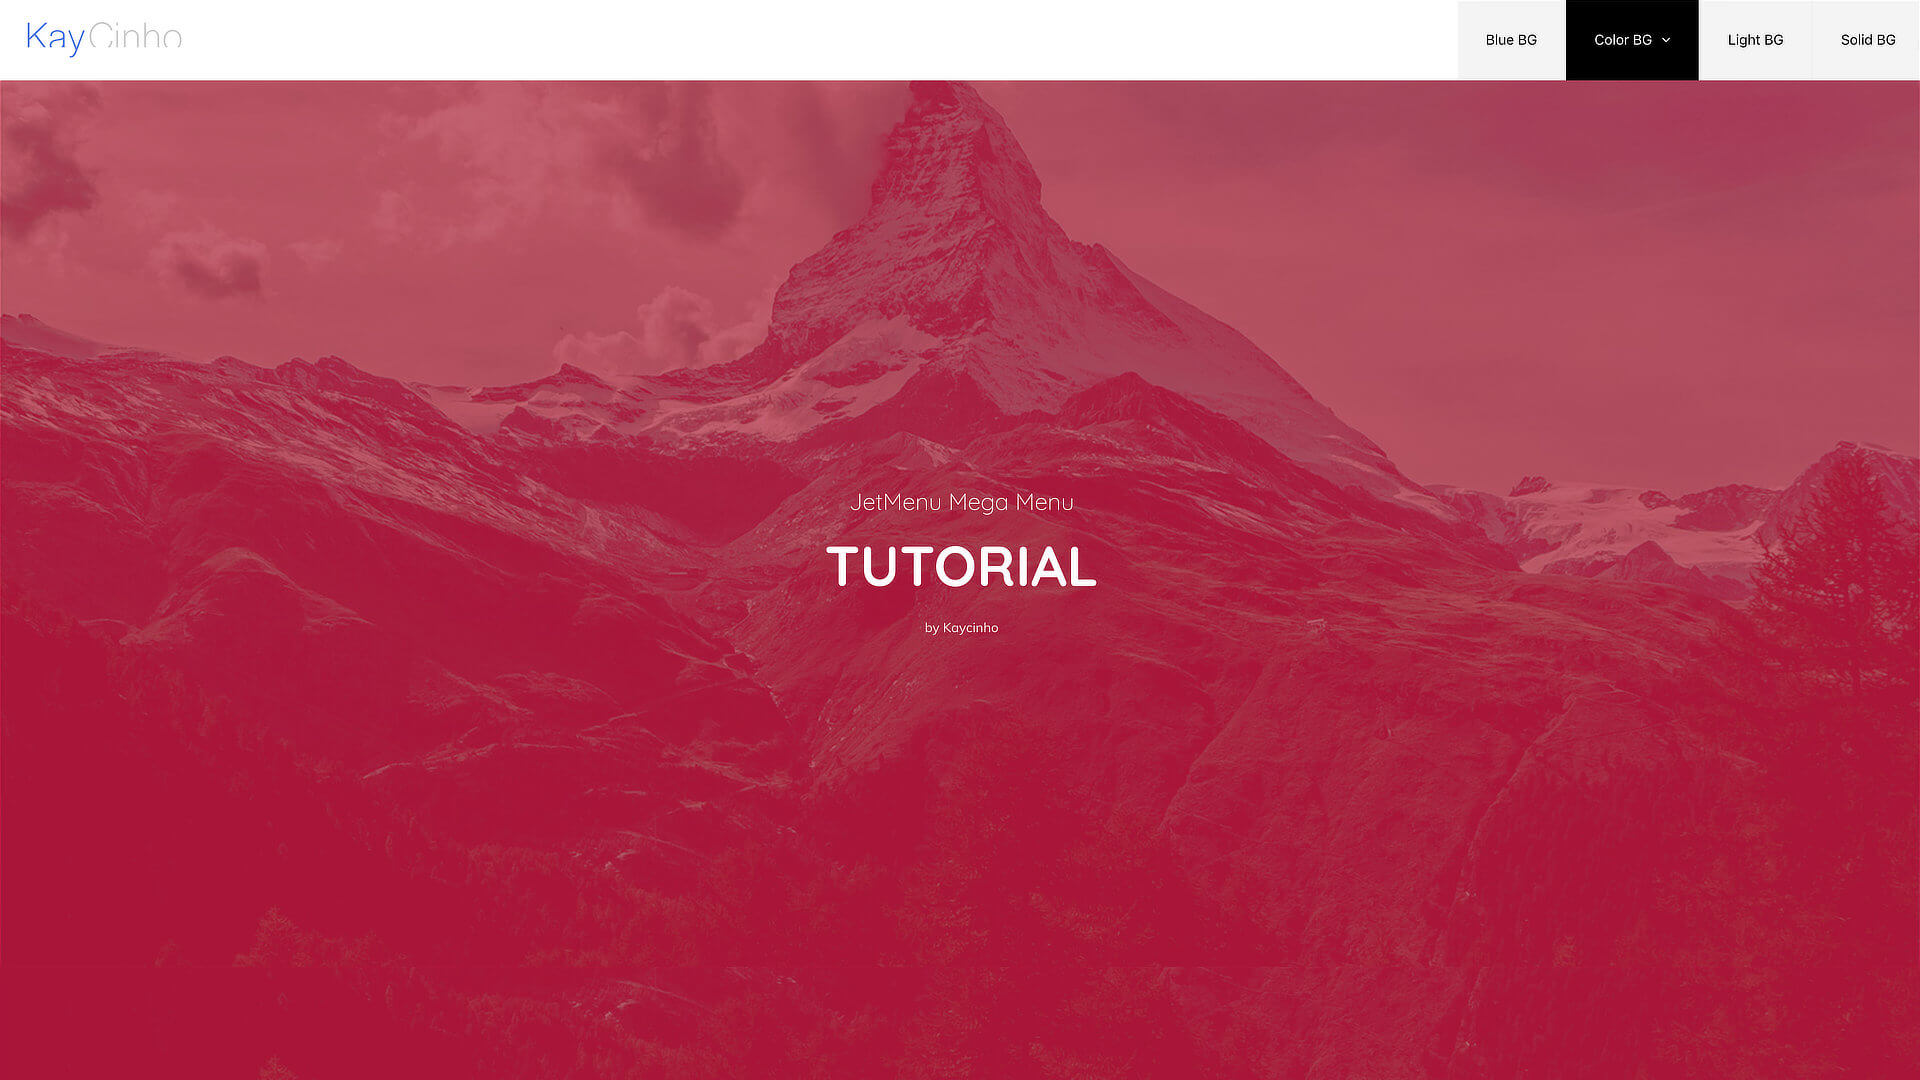 Wp Mega Menus: let your creativity flow with Elementor Pro and JetMenu from Crocoblock